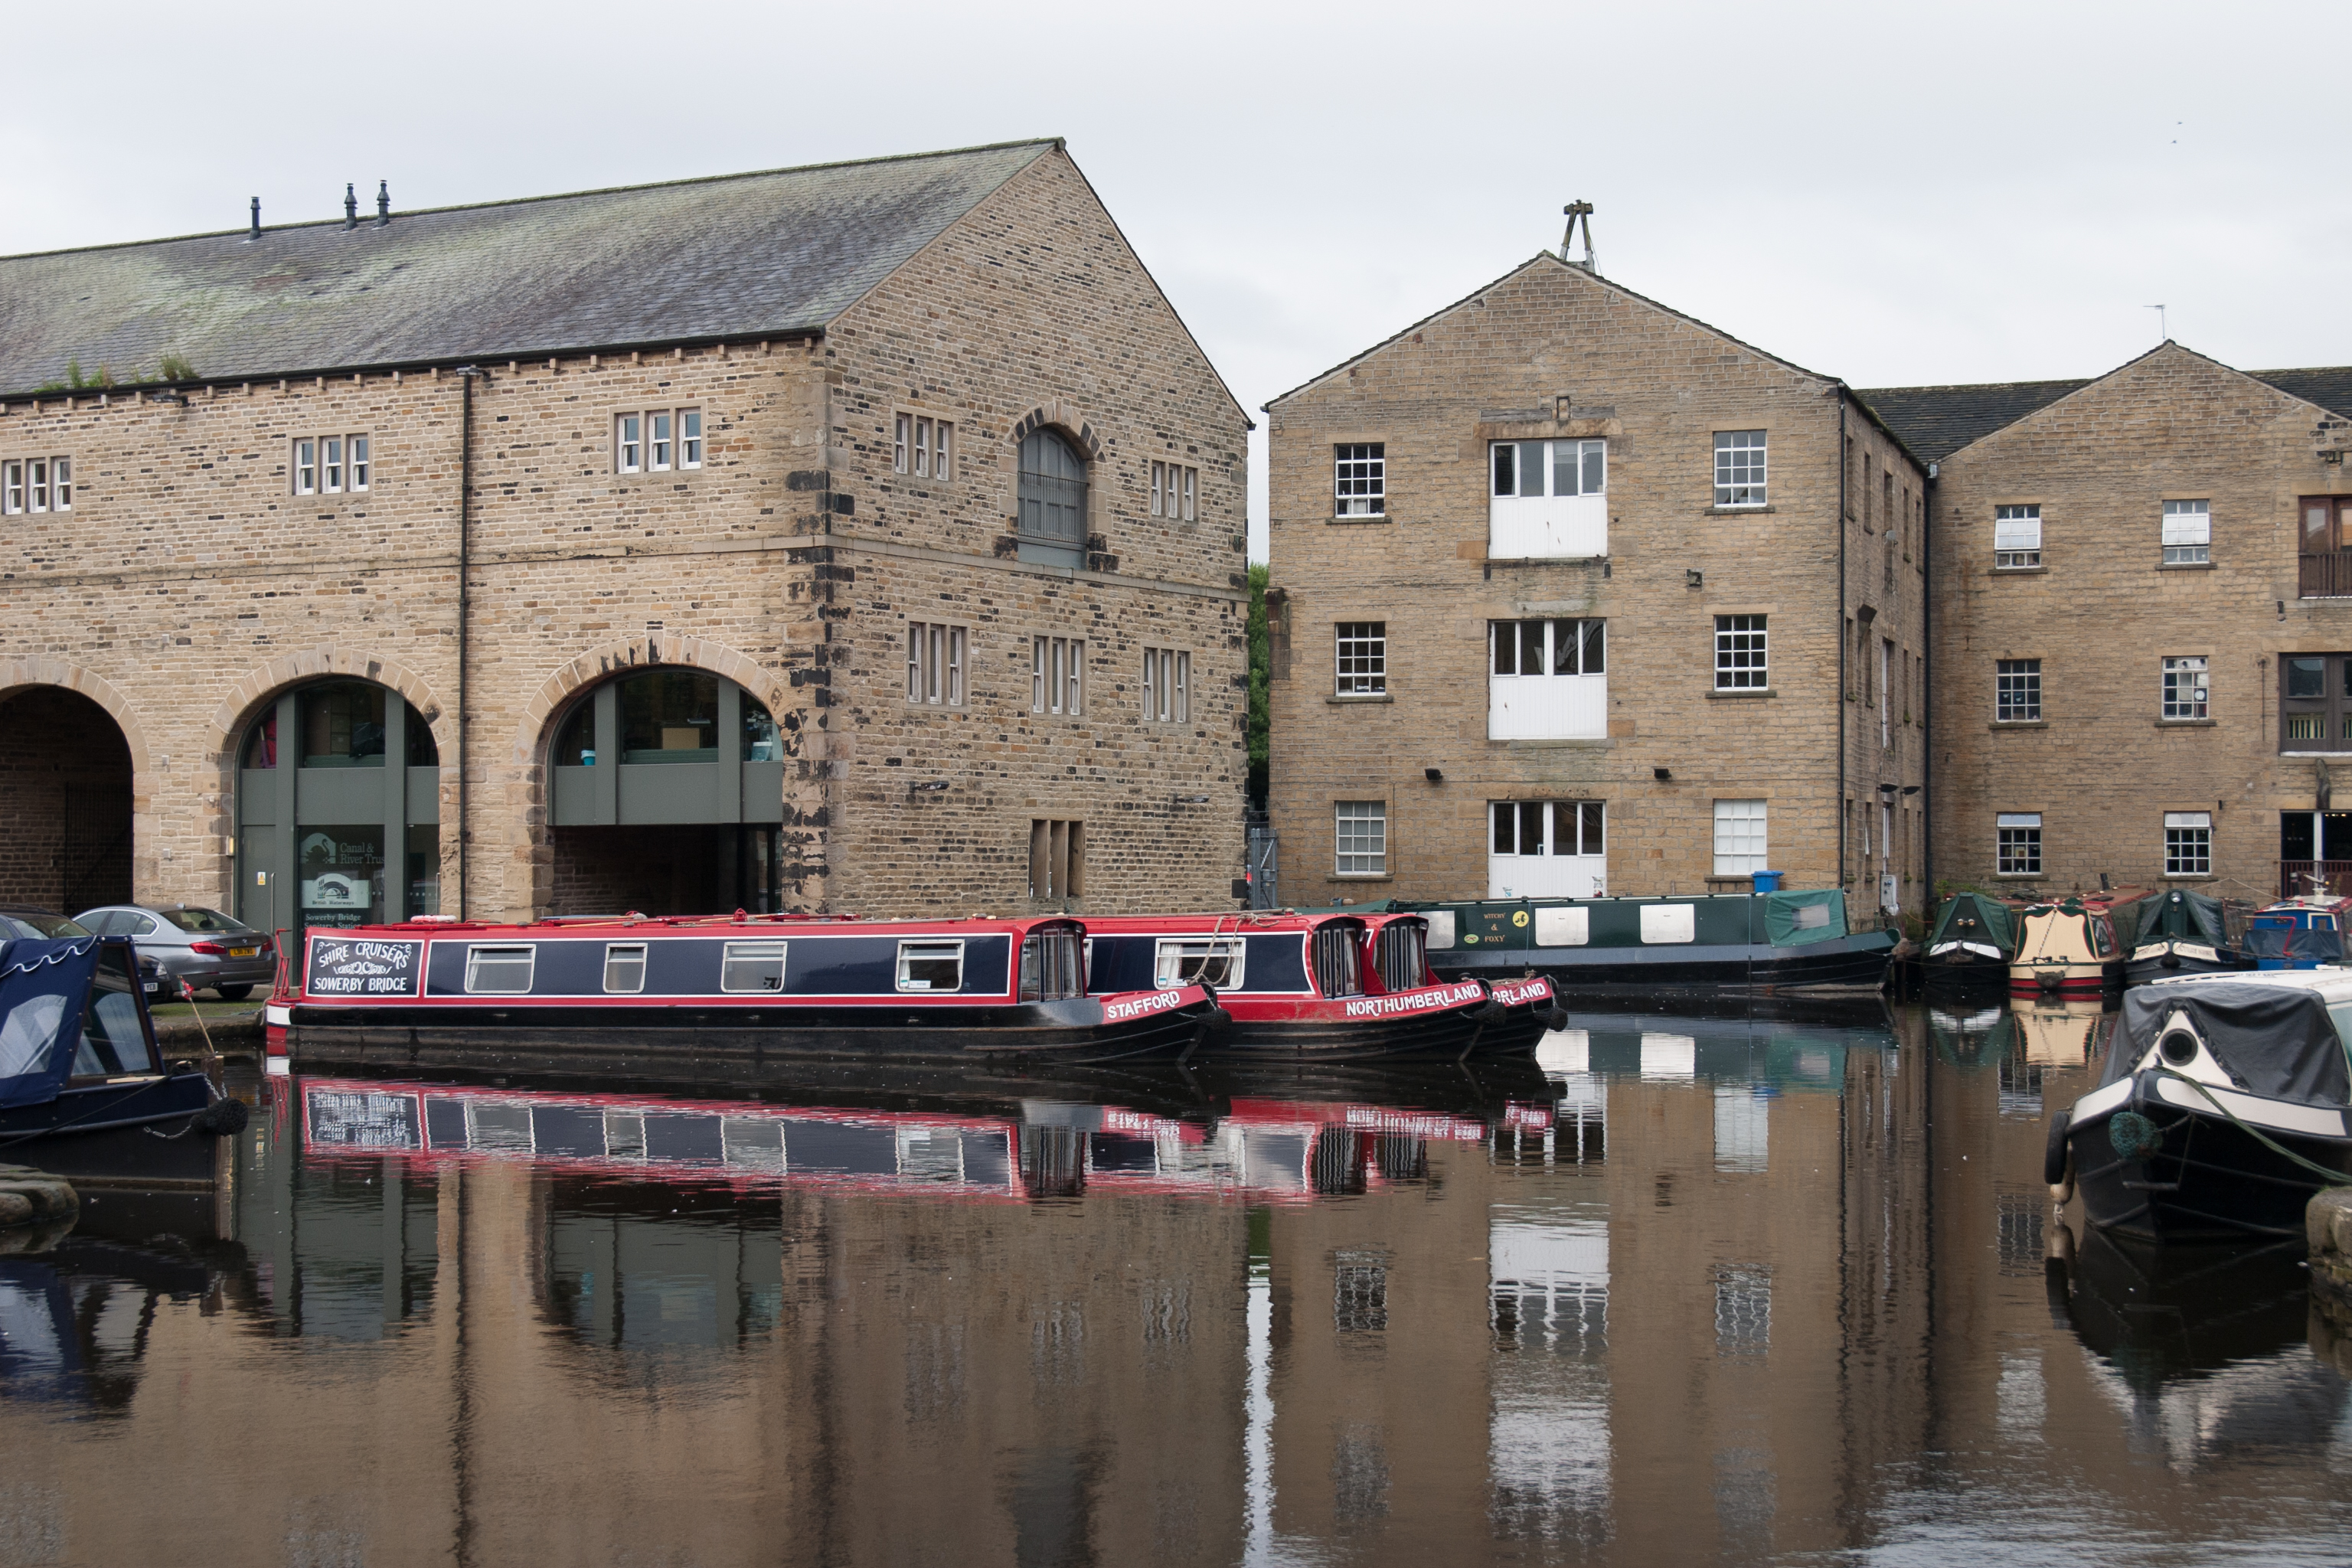 The Wharf Sowerby Bridge